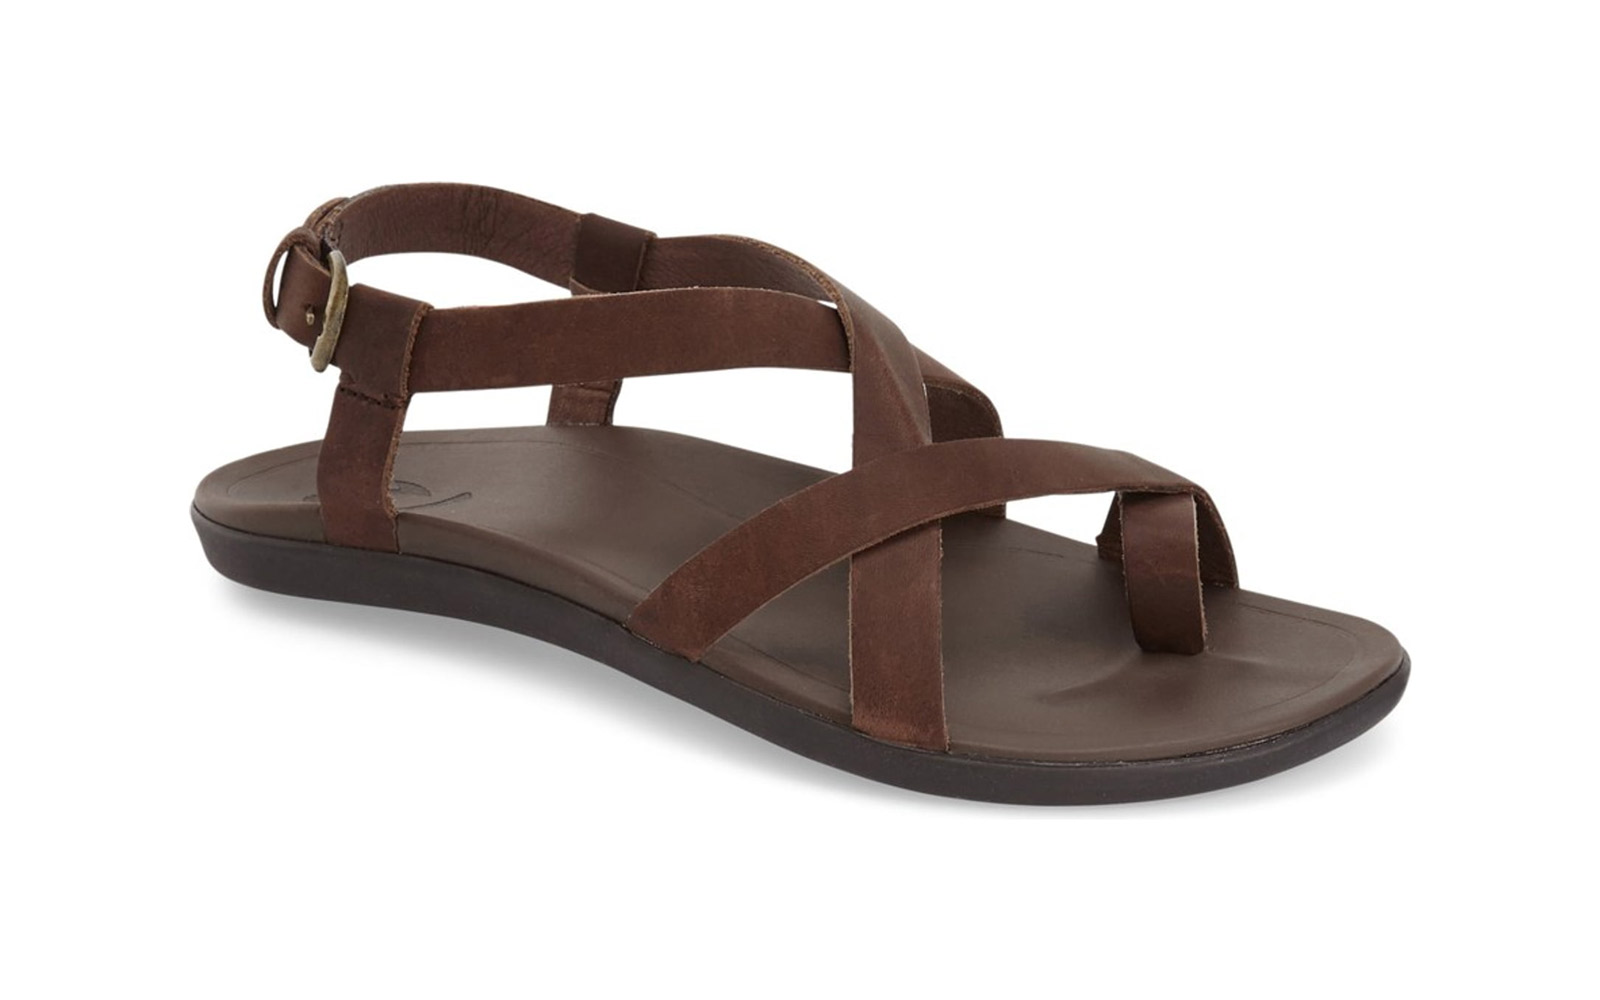 walking sandals for women travel